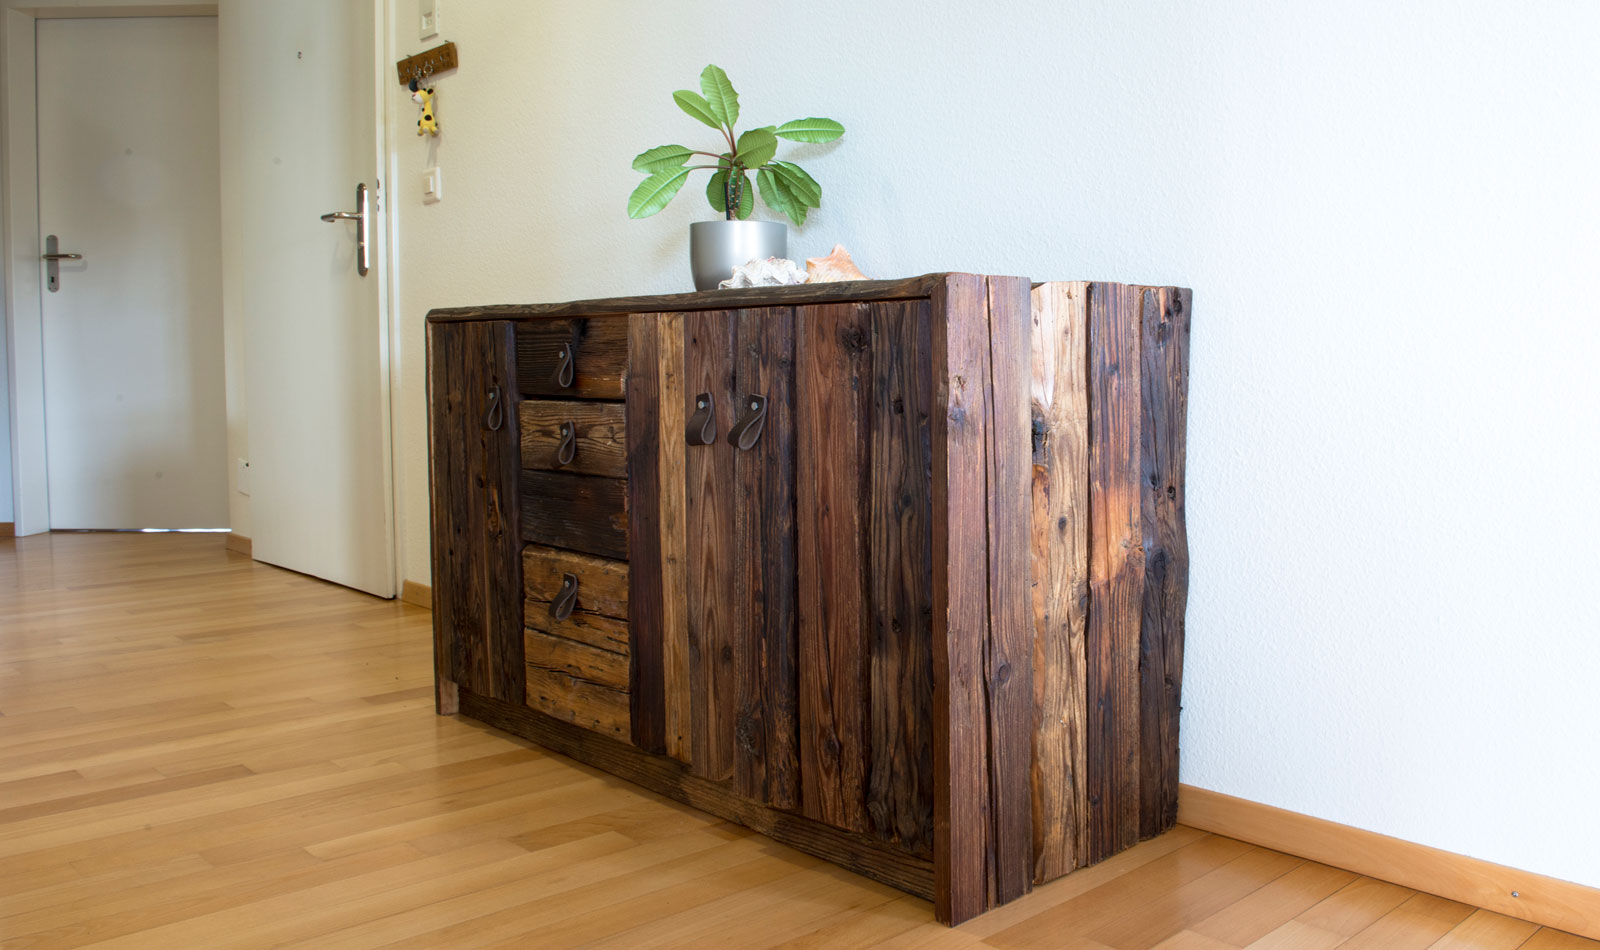 Cabinet or sideboard made of old wood by wood and metal, Zurich